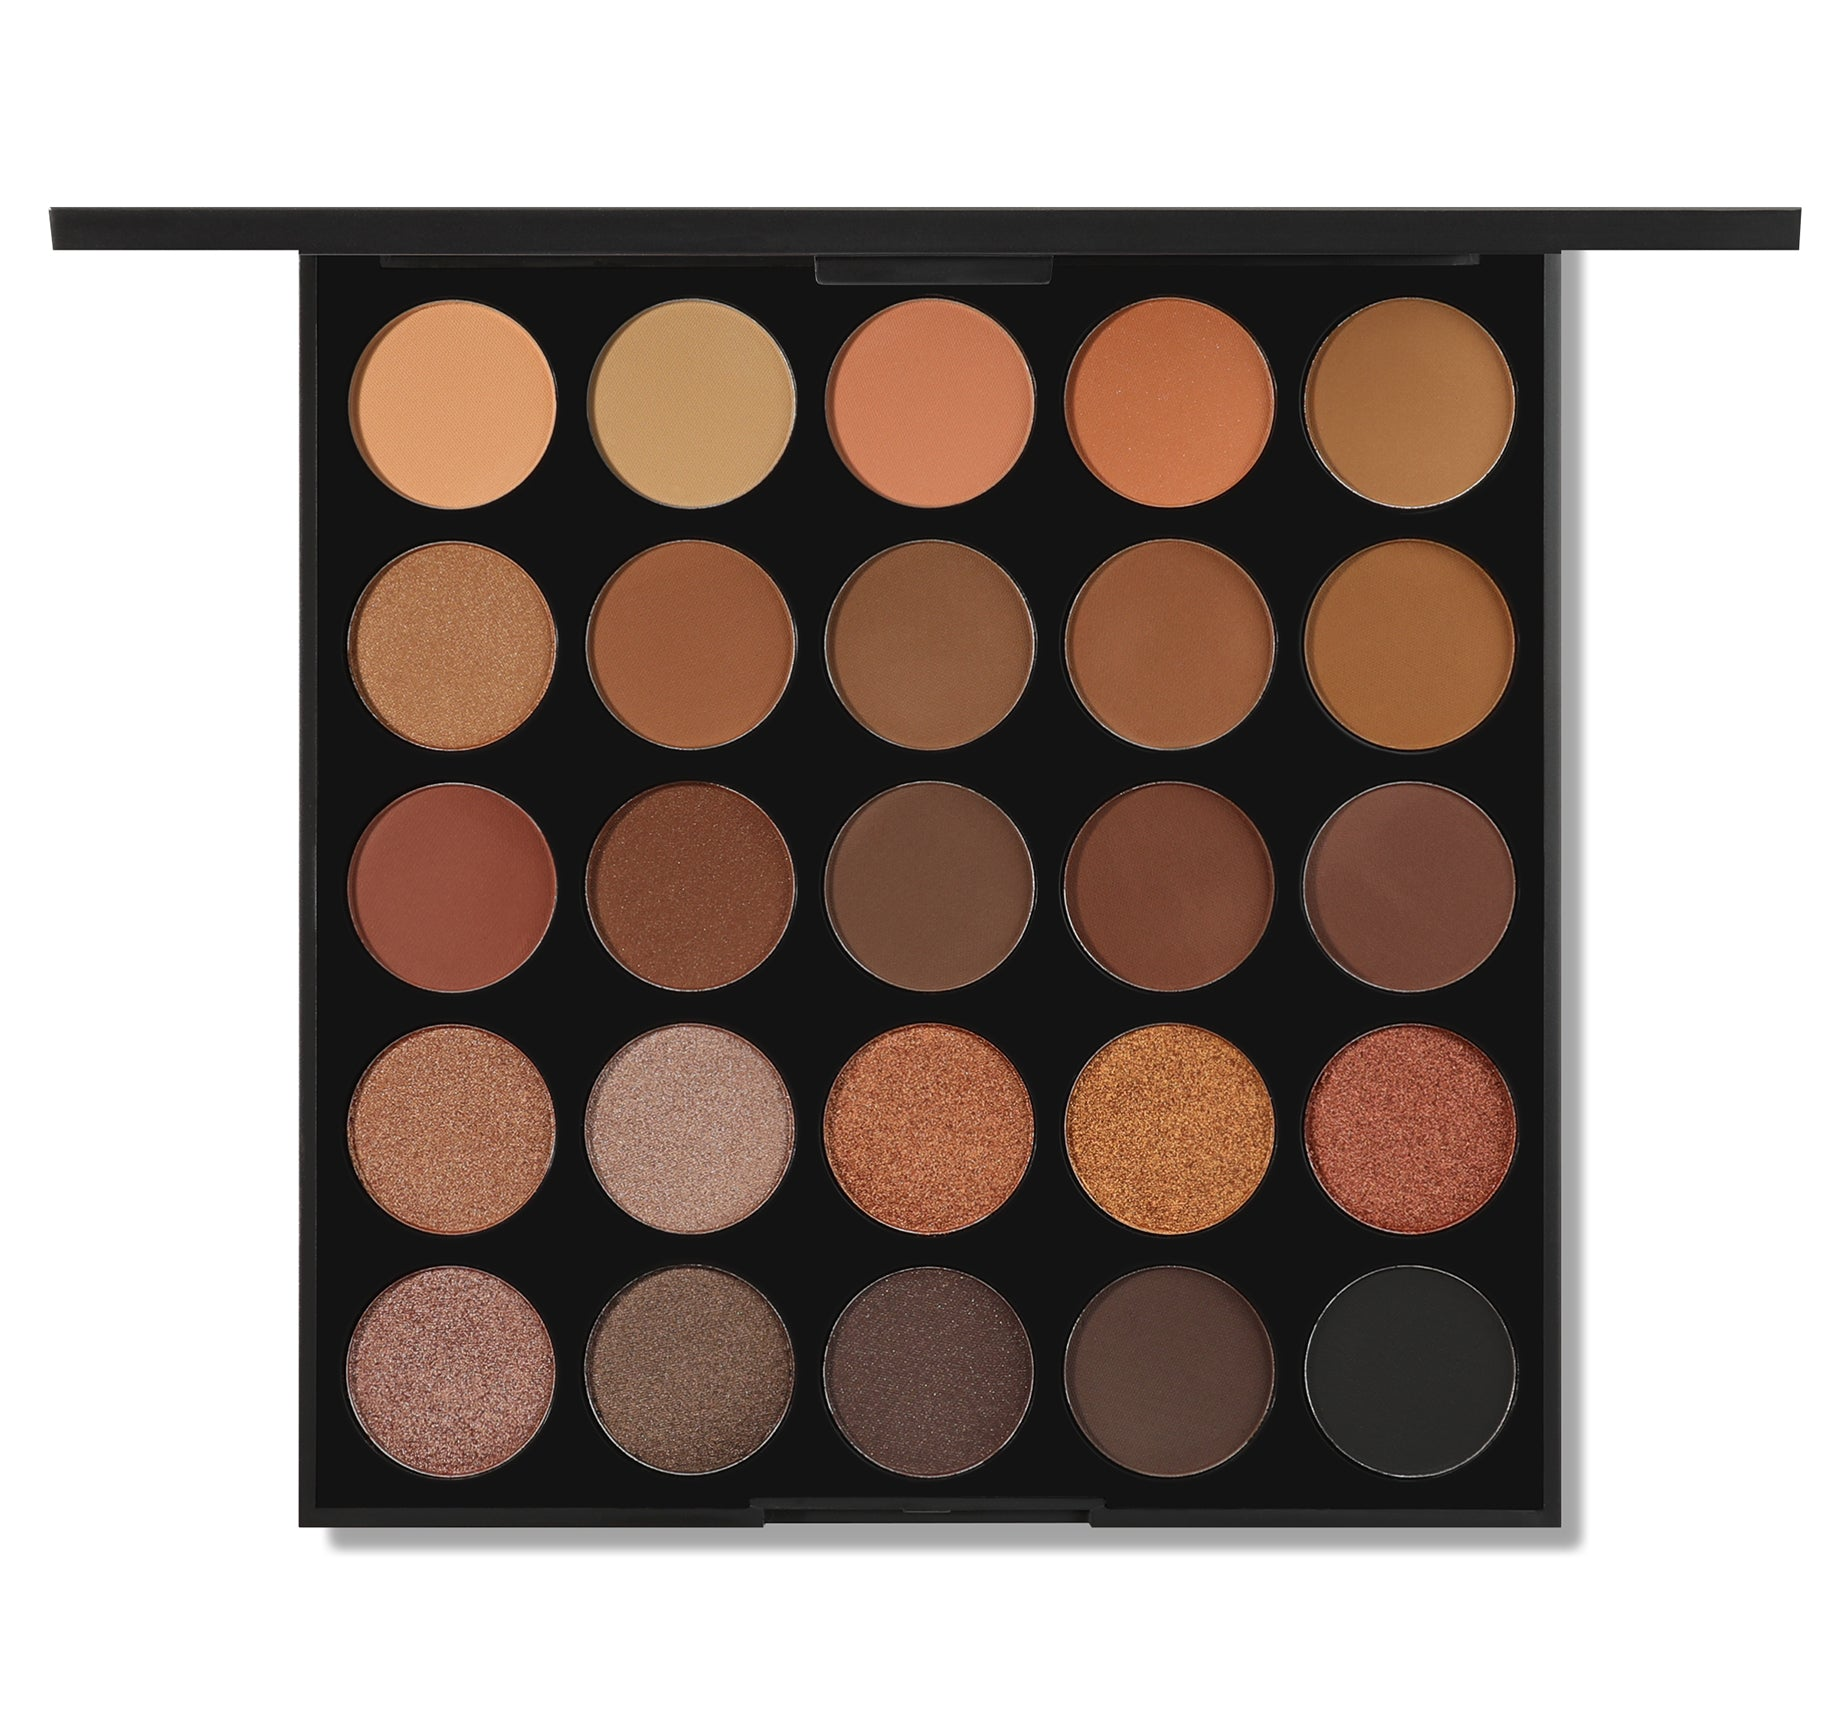 25A COPPER SPICE ARTISTRY PALETTE, view larger image